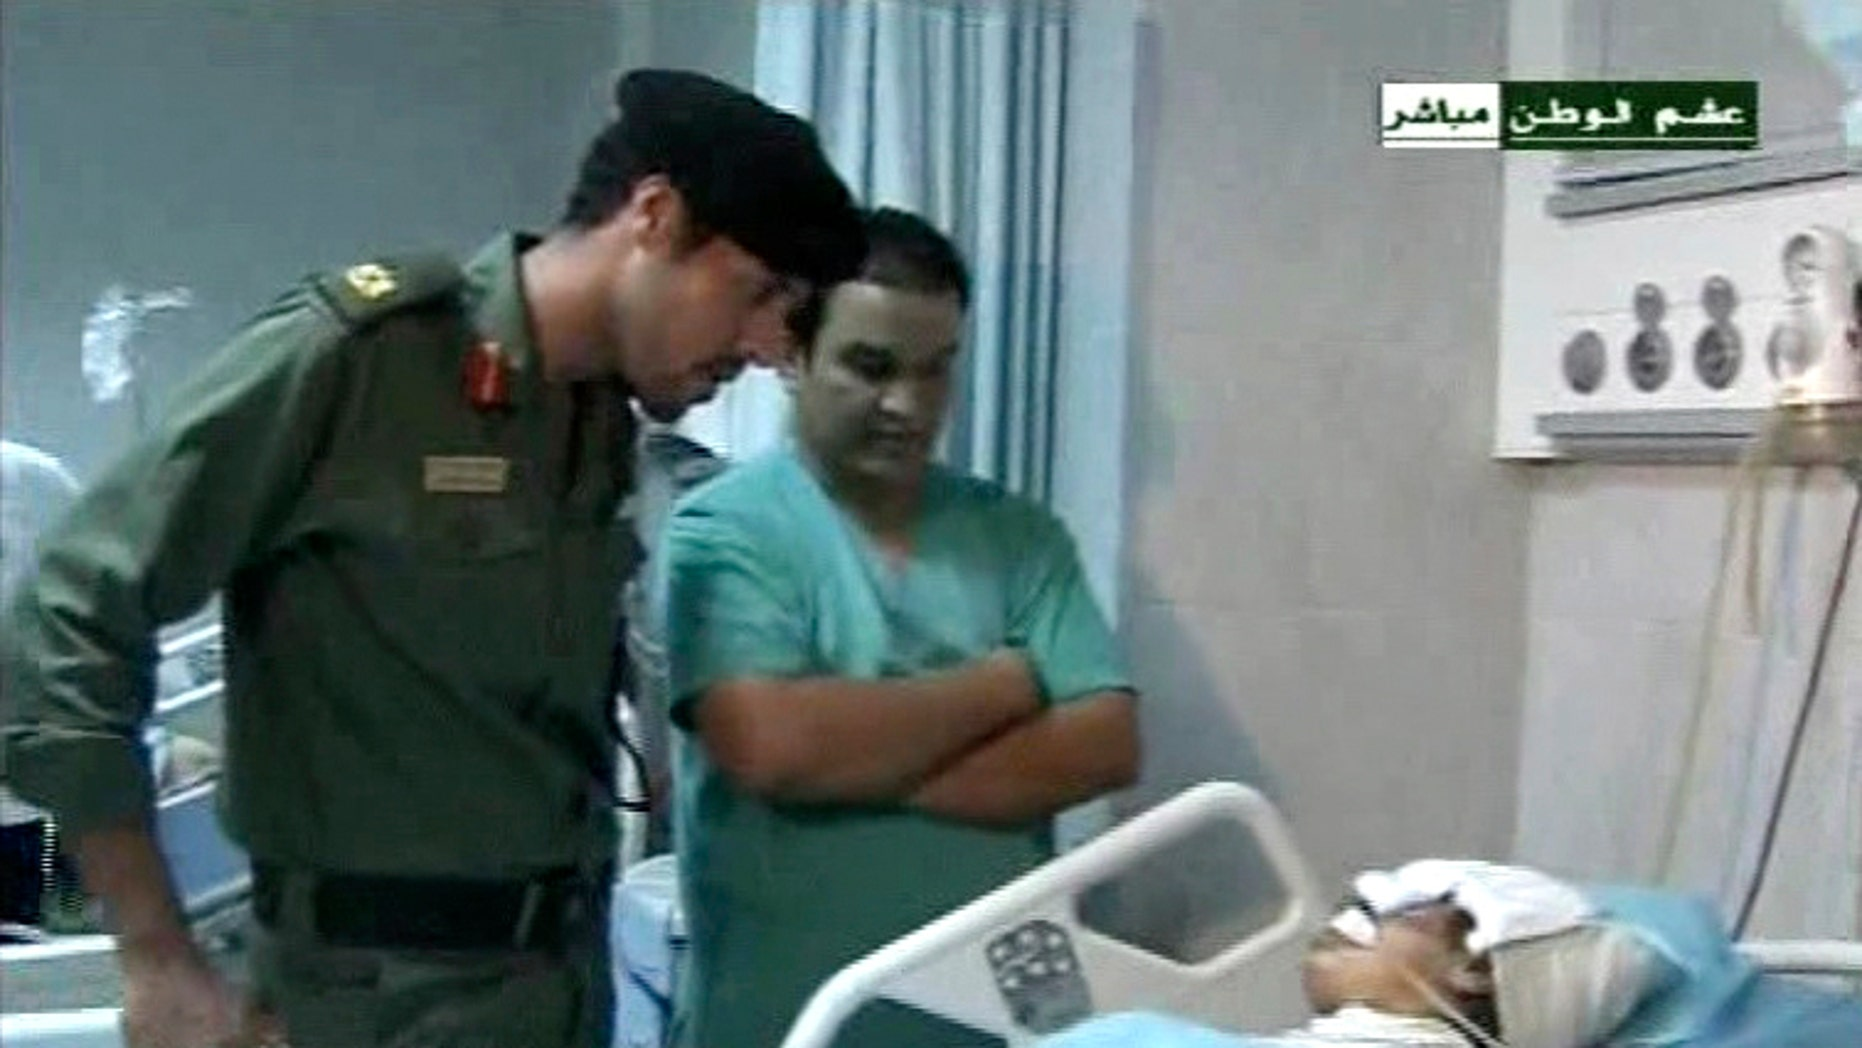 Aug. 10: This video image broadcast Wednesday by Libyan TV purports to shows Muammar al-Qaddafi's youngest son Khamis Qaddafi, left, who commands one of the best trained and equipped units in the Libyan military, visiting an injured man in a hospital in Tripoli, Libya on Tuesday Aug. 9.